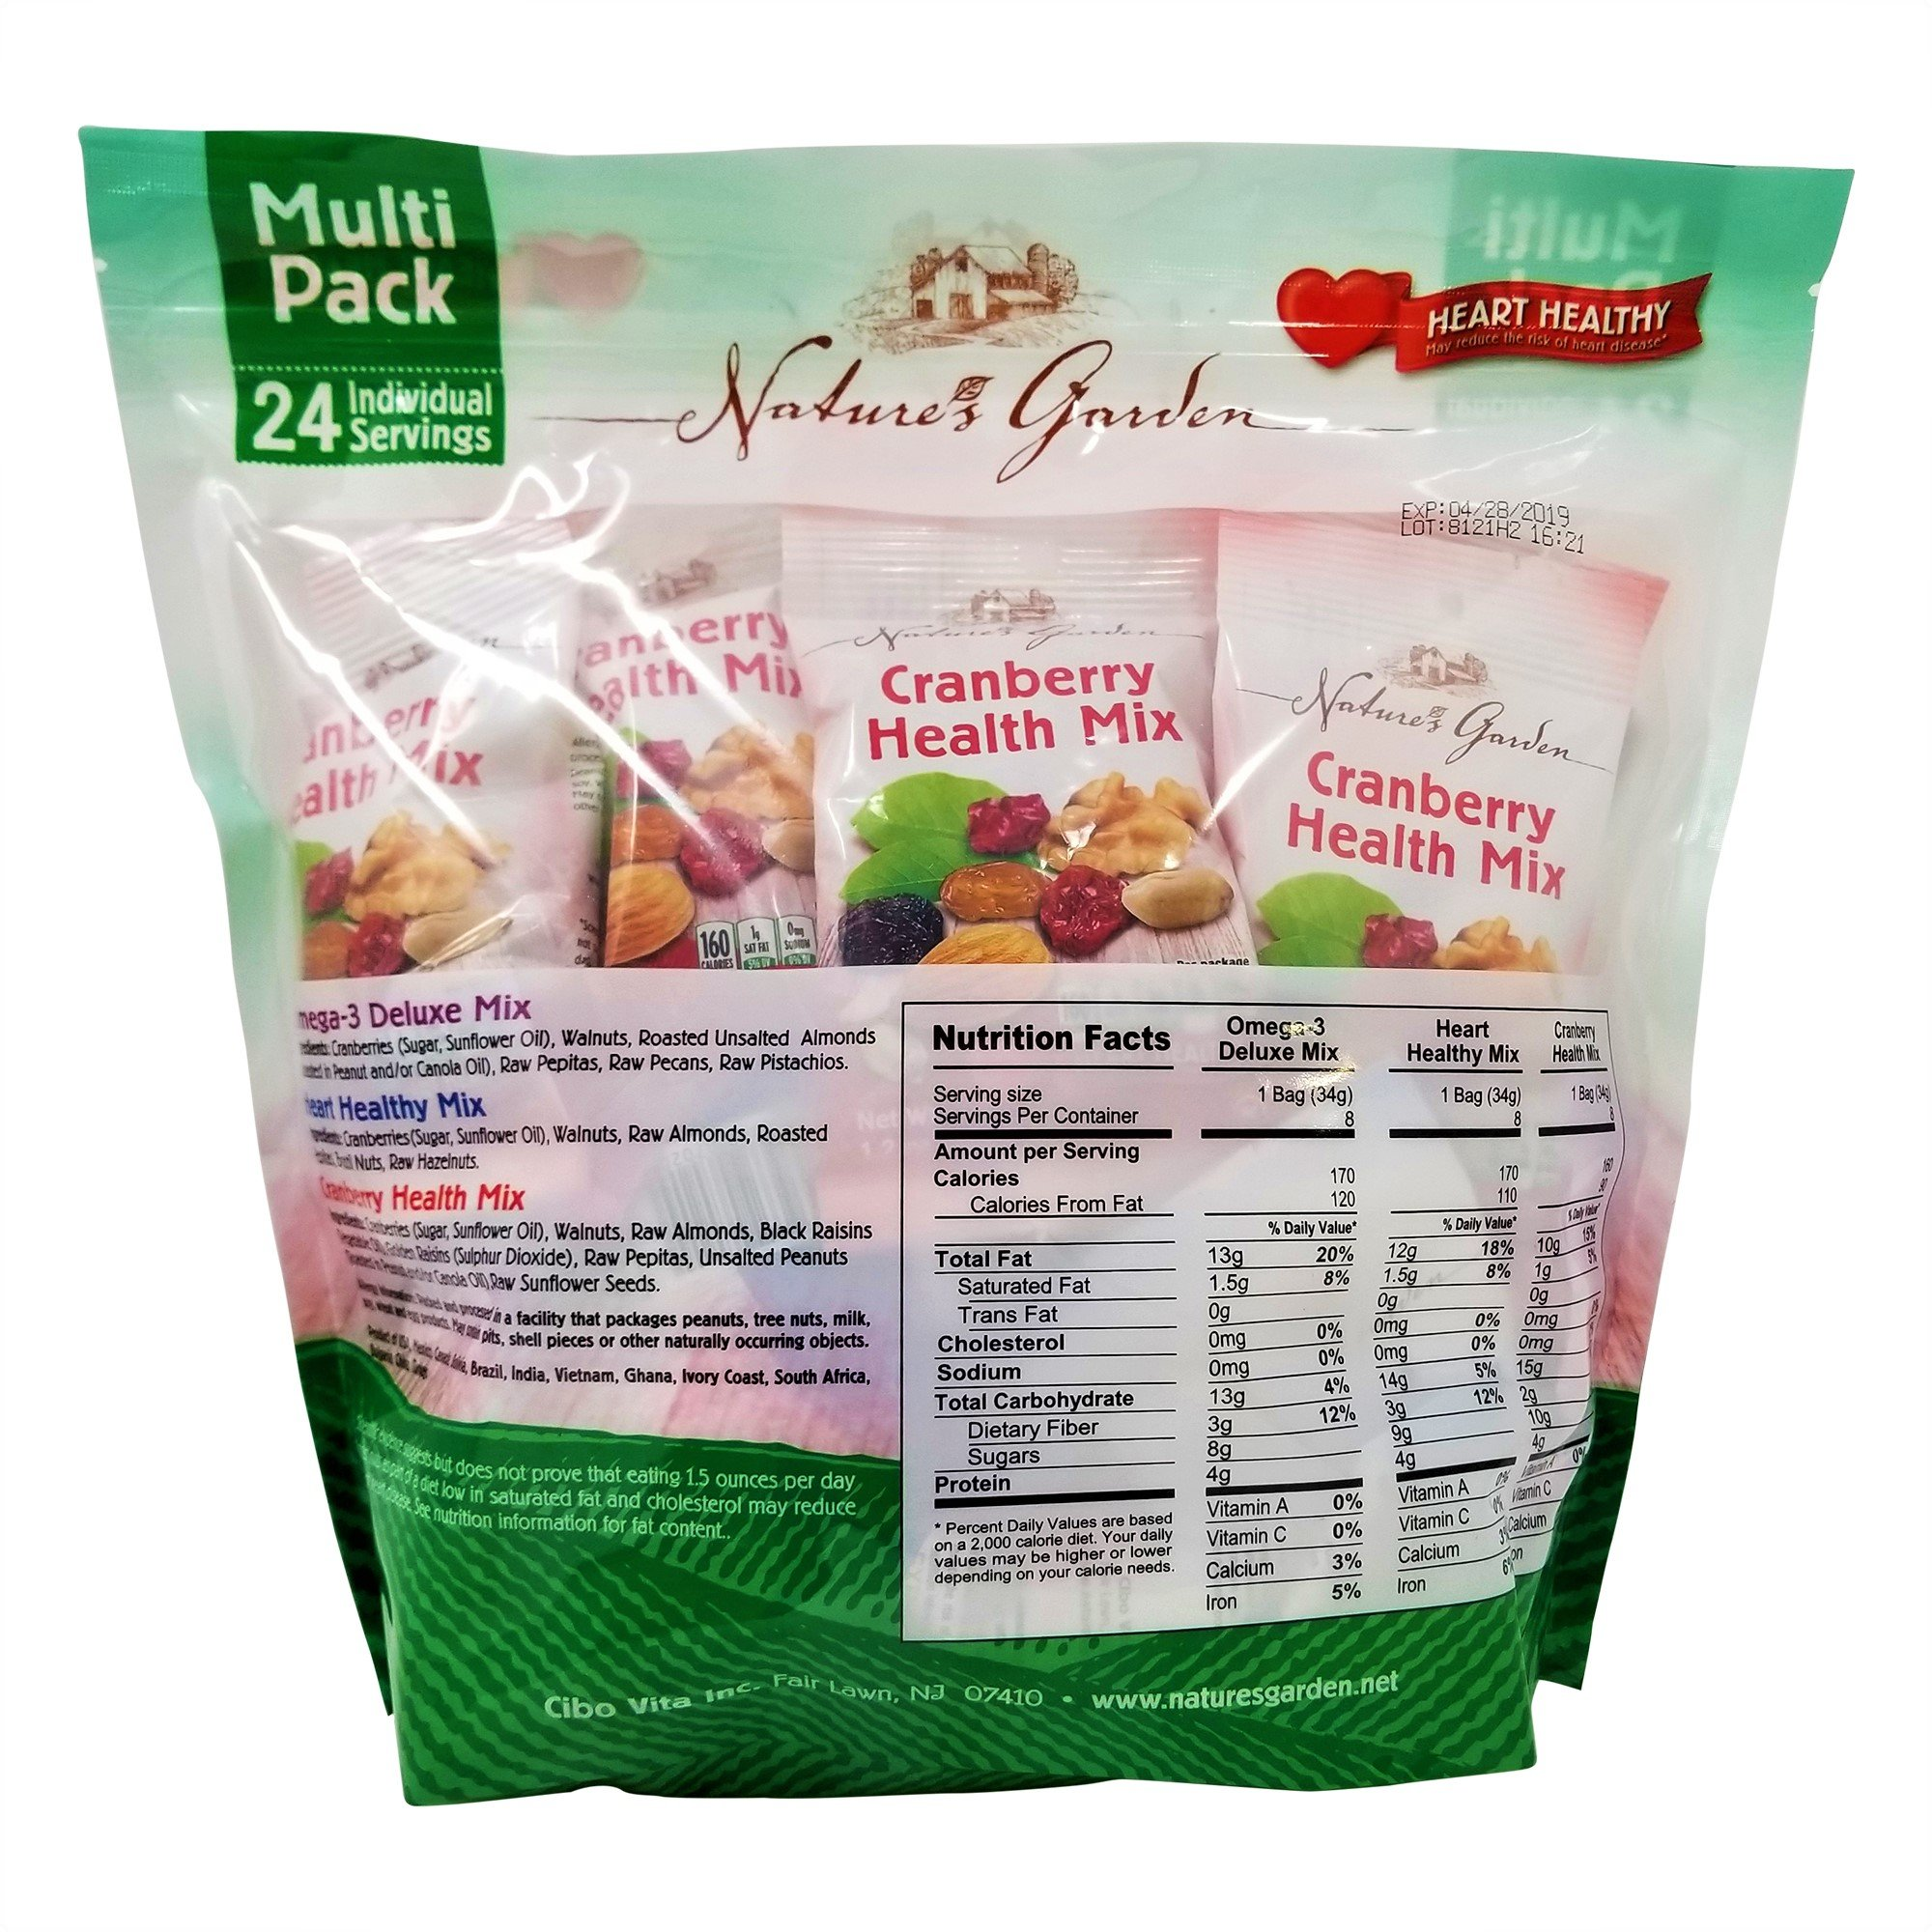 Nature's Garden Healthy Trail Mix Snack Packs 1.2 oz, Pack of 24 (Total 28.8 oz) by Nature's Garden (Image #2)